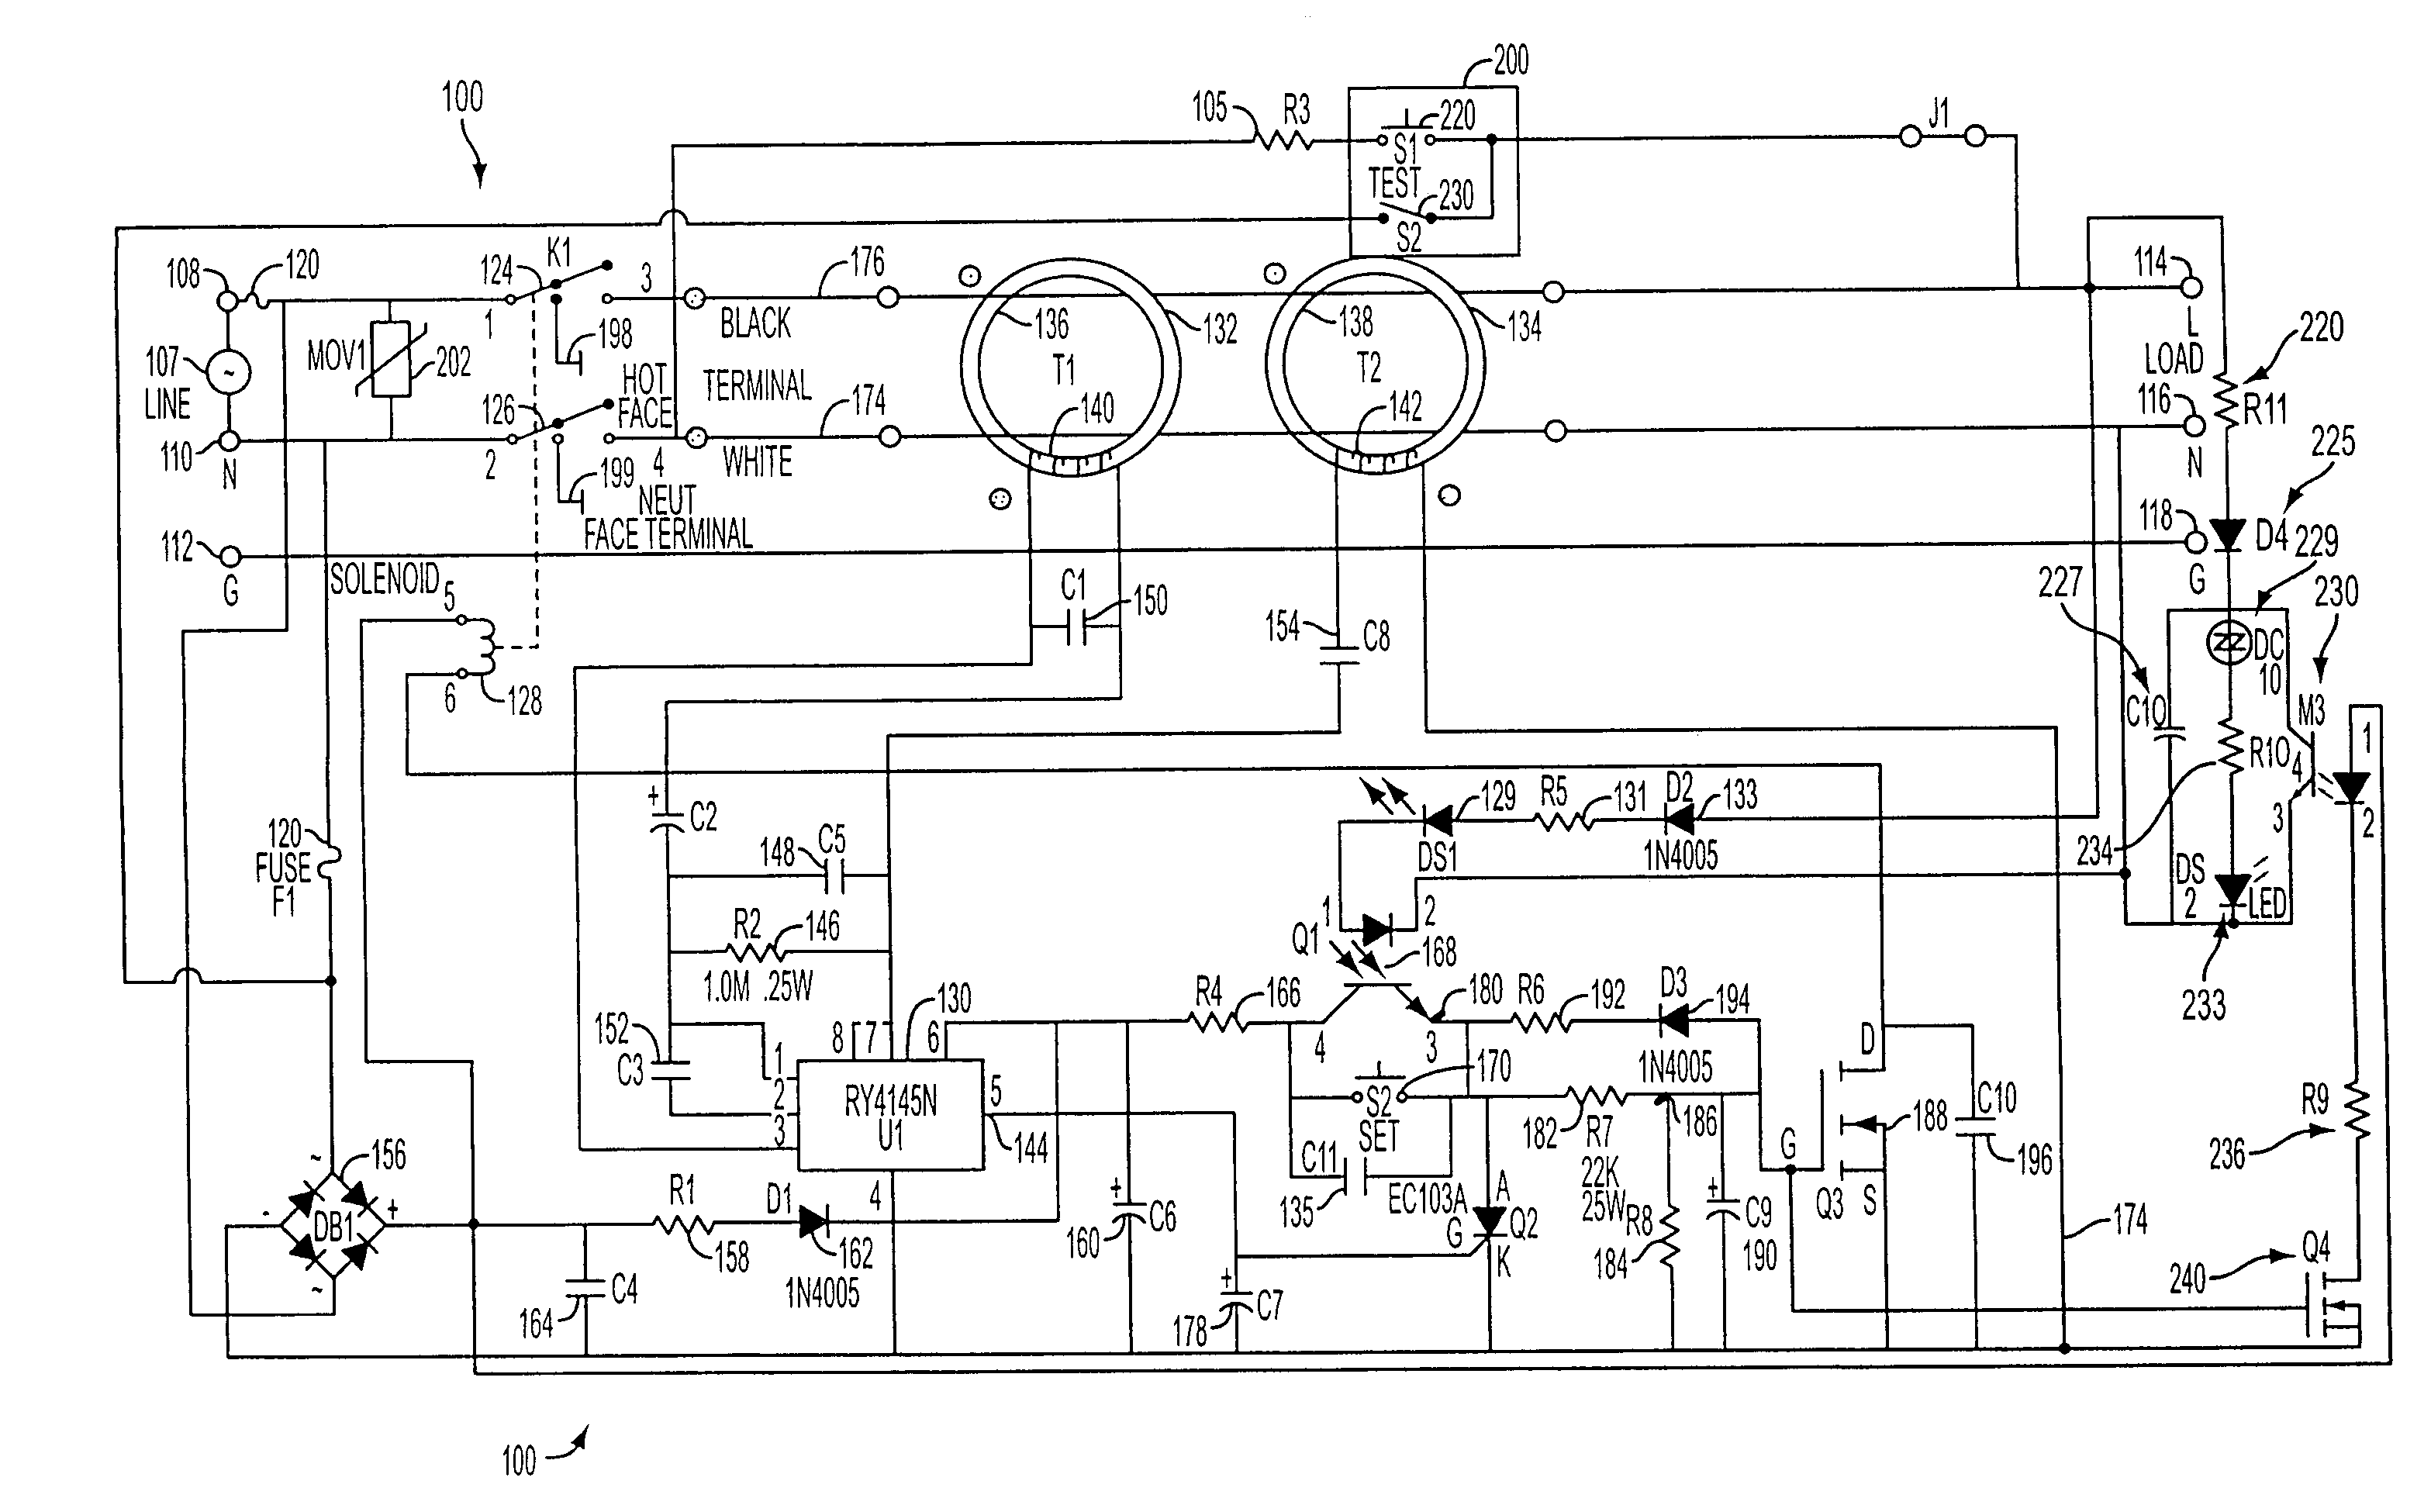 Gfci Circuit Diagram 20 Wiring Images Diagrams Gfi Internal Us07336457 20080226 D00000 Patent Us7336457 Ground Fault Interrupter End Of